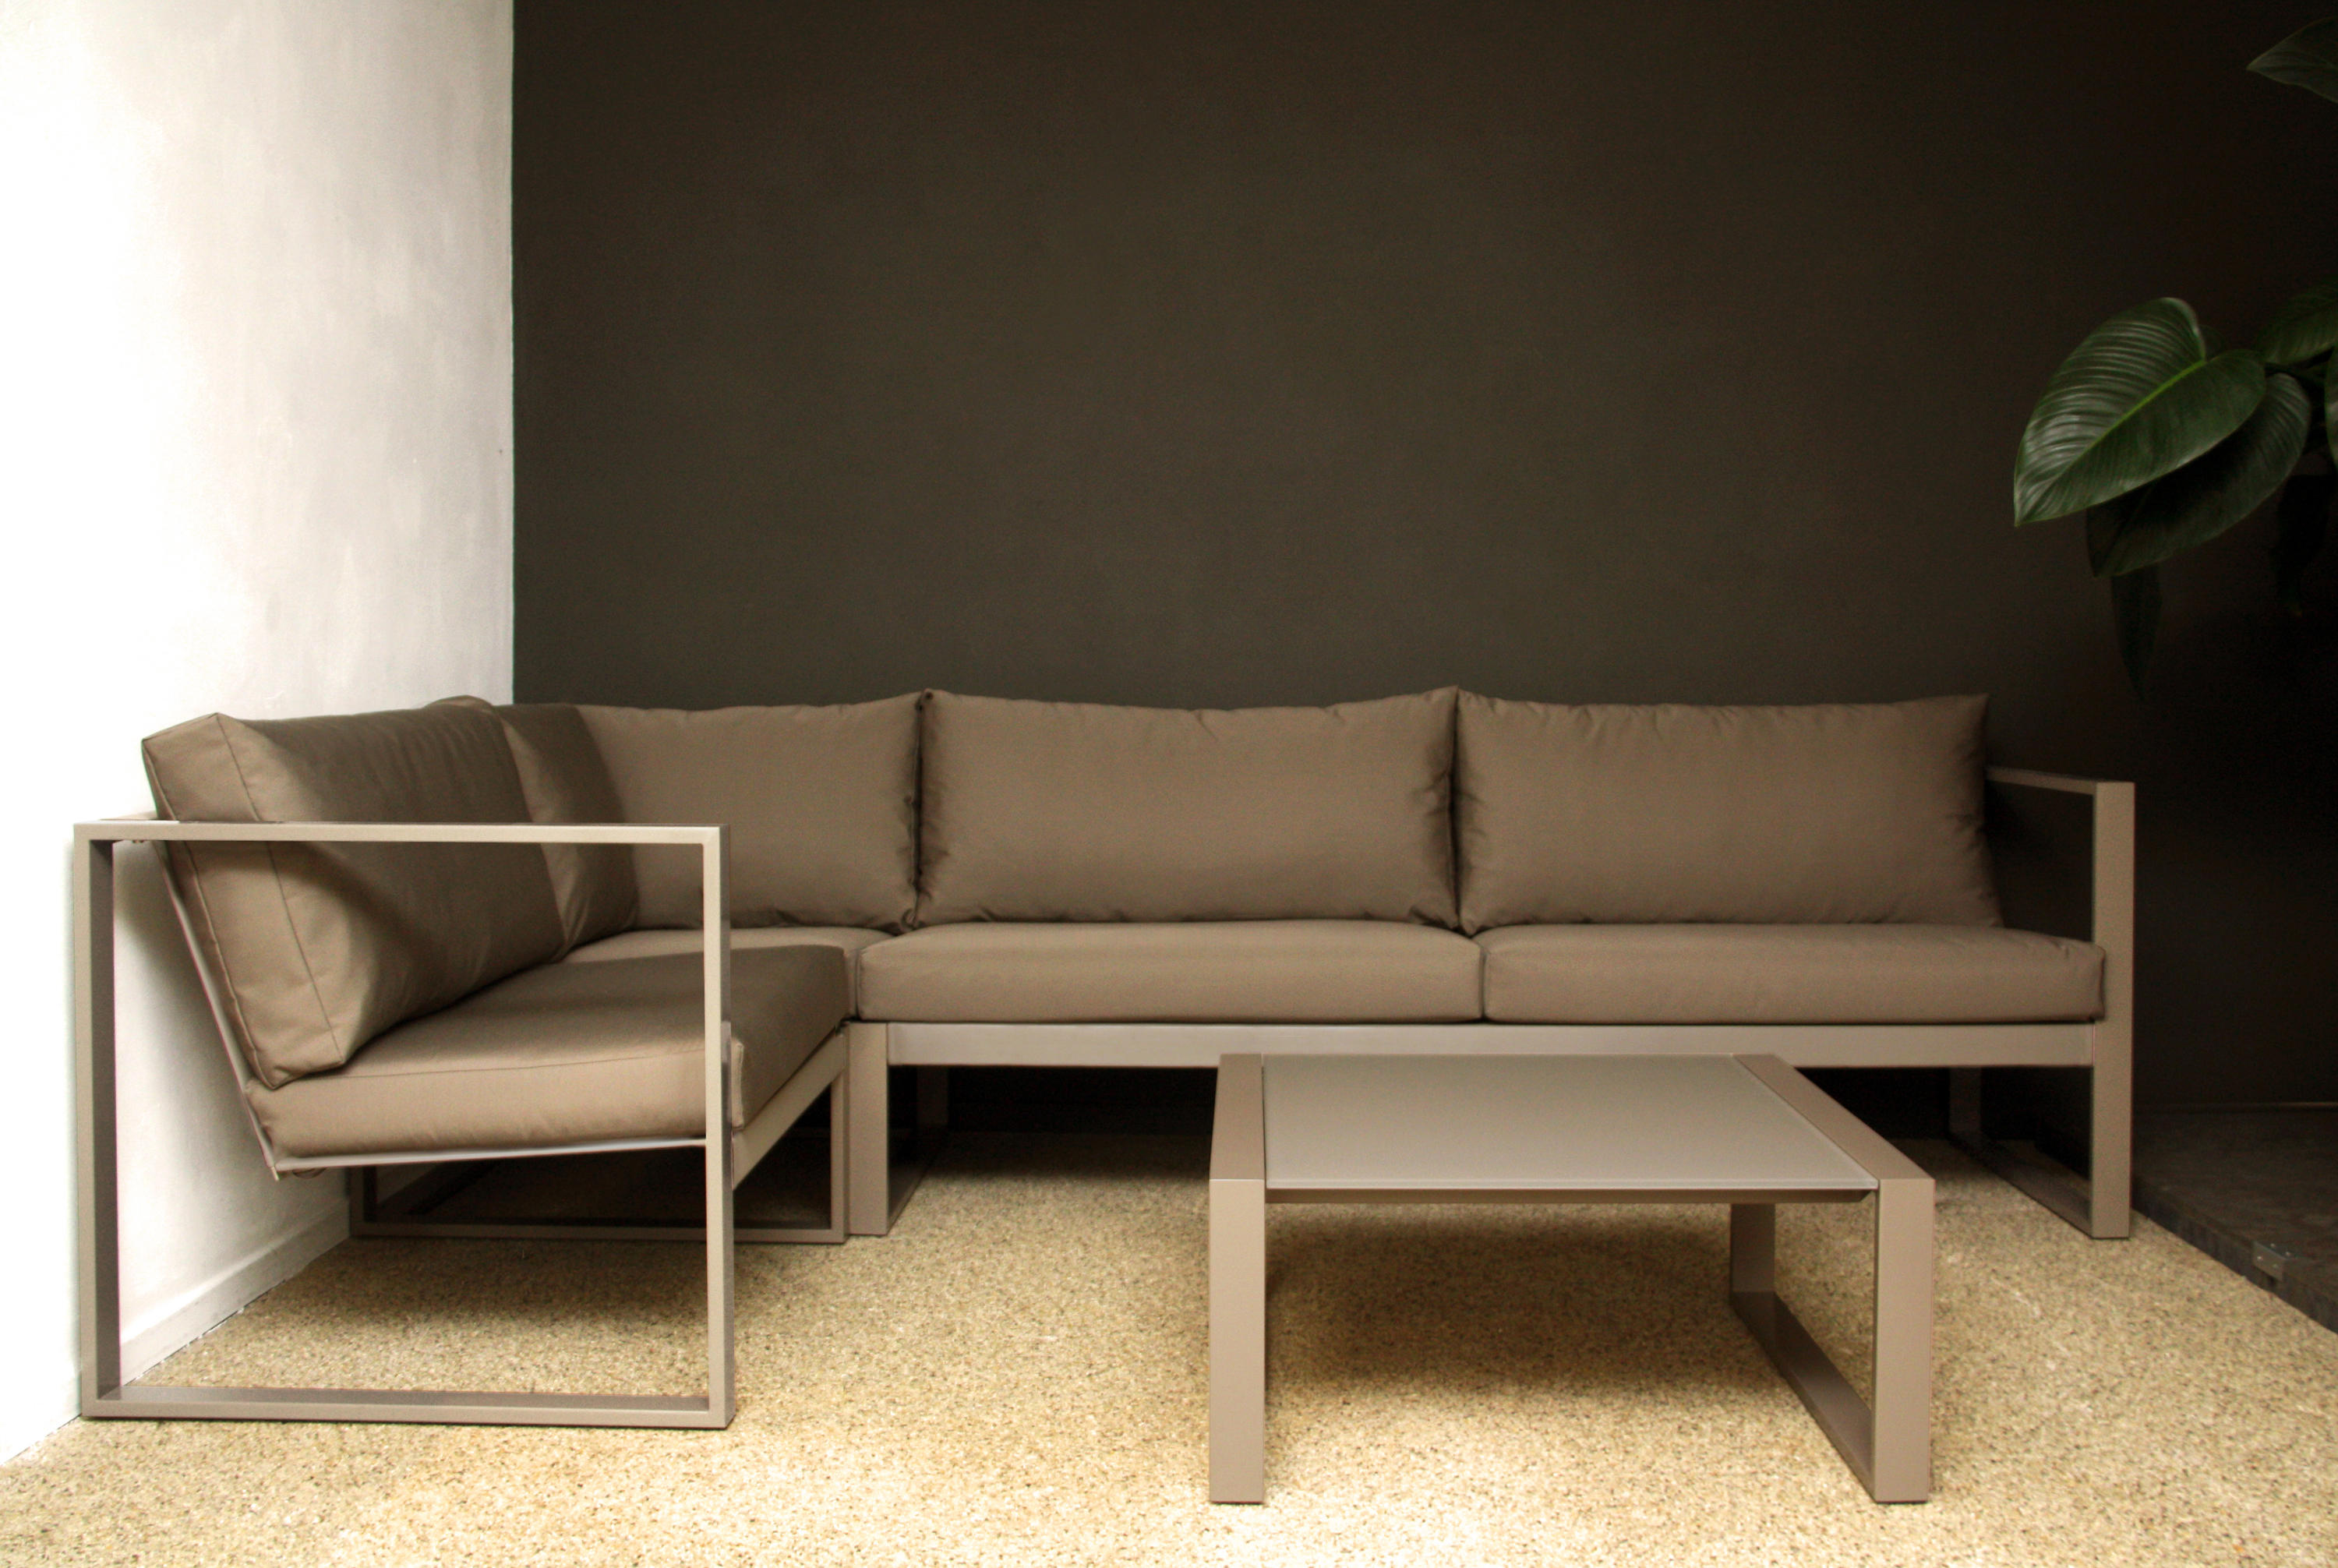 Loungeset Klein Loungeset Klein Loungeset De Luxe With Loungeset Klein